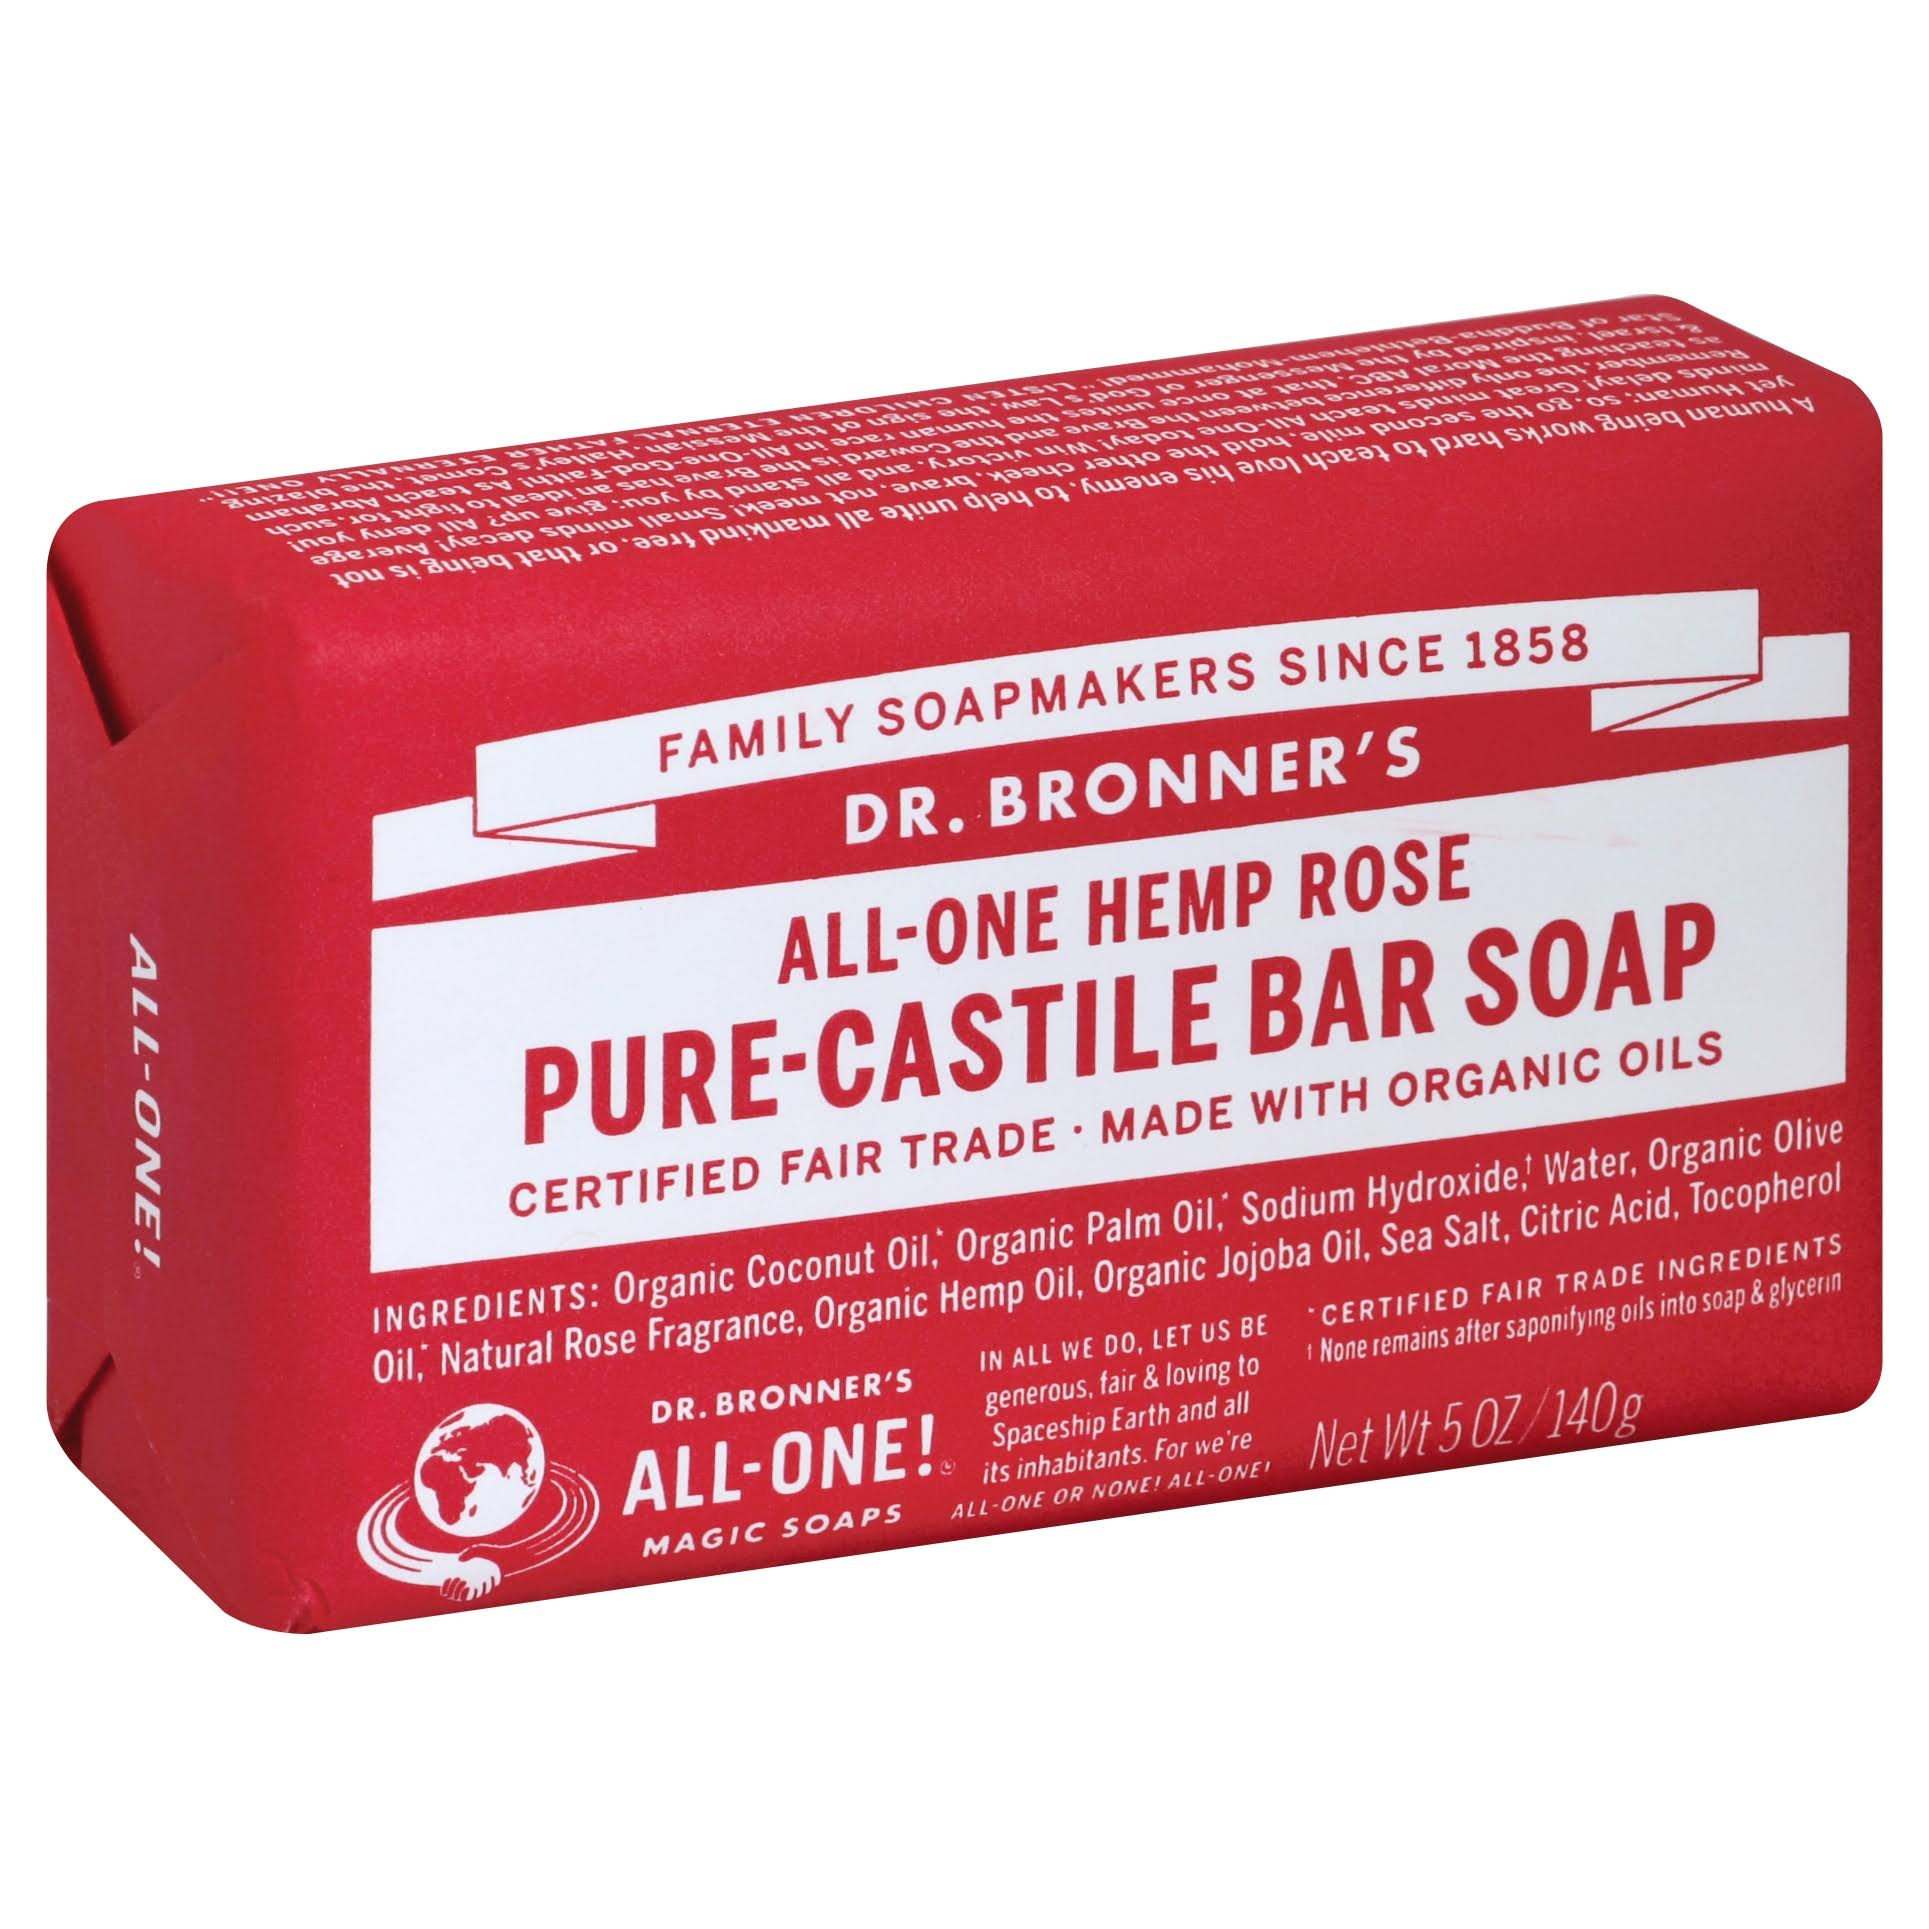 Dr. Bronner's Classic Pure-Castile Soap - Rose